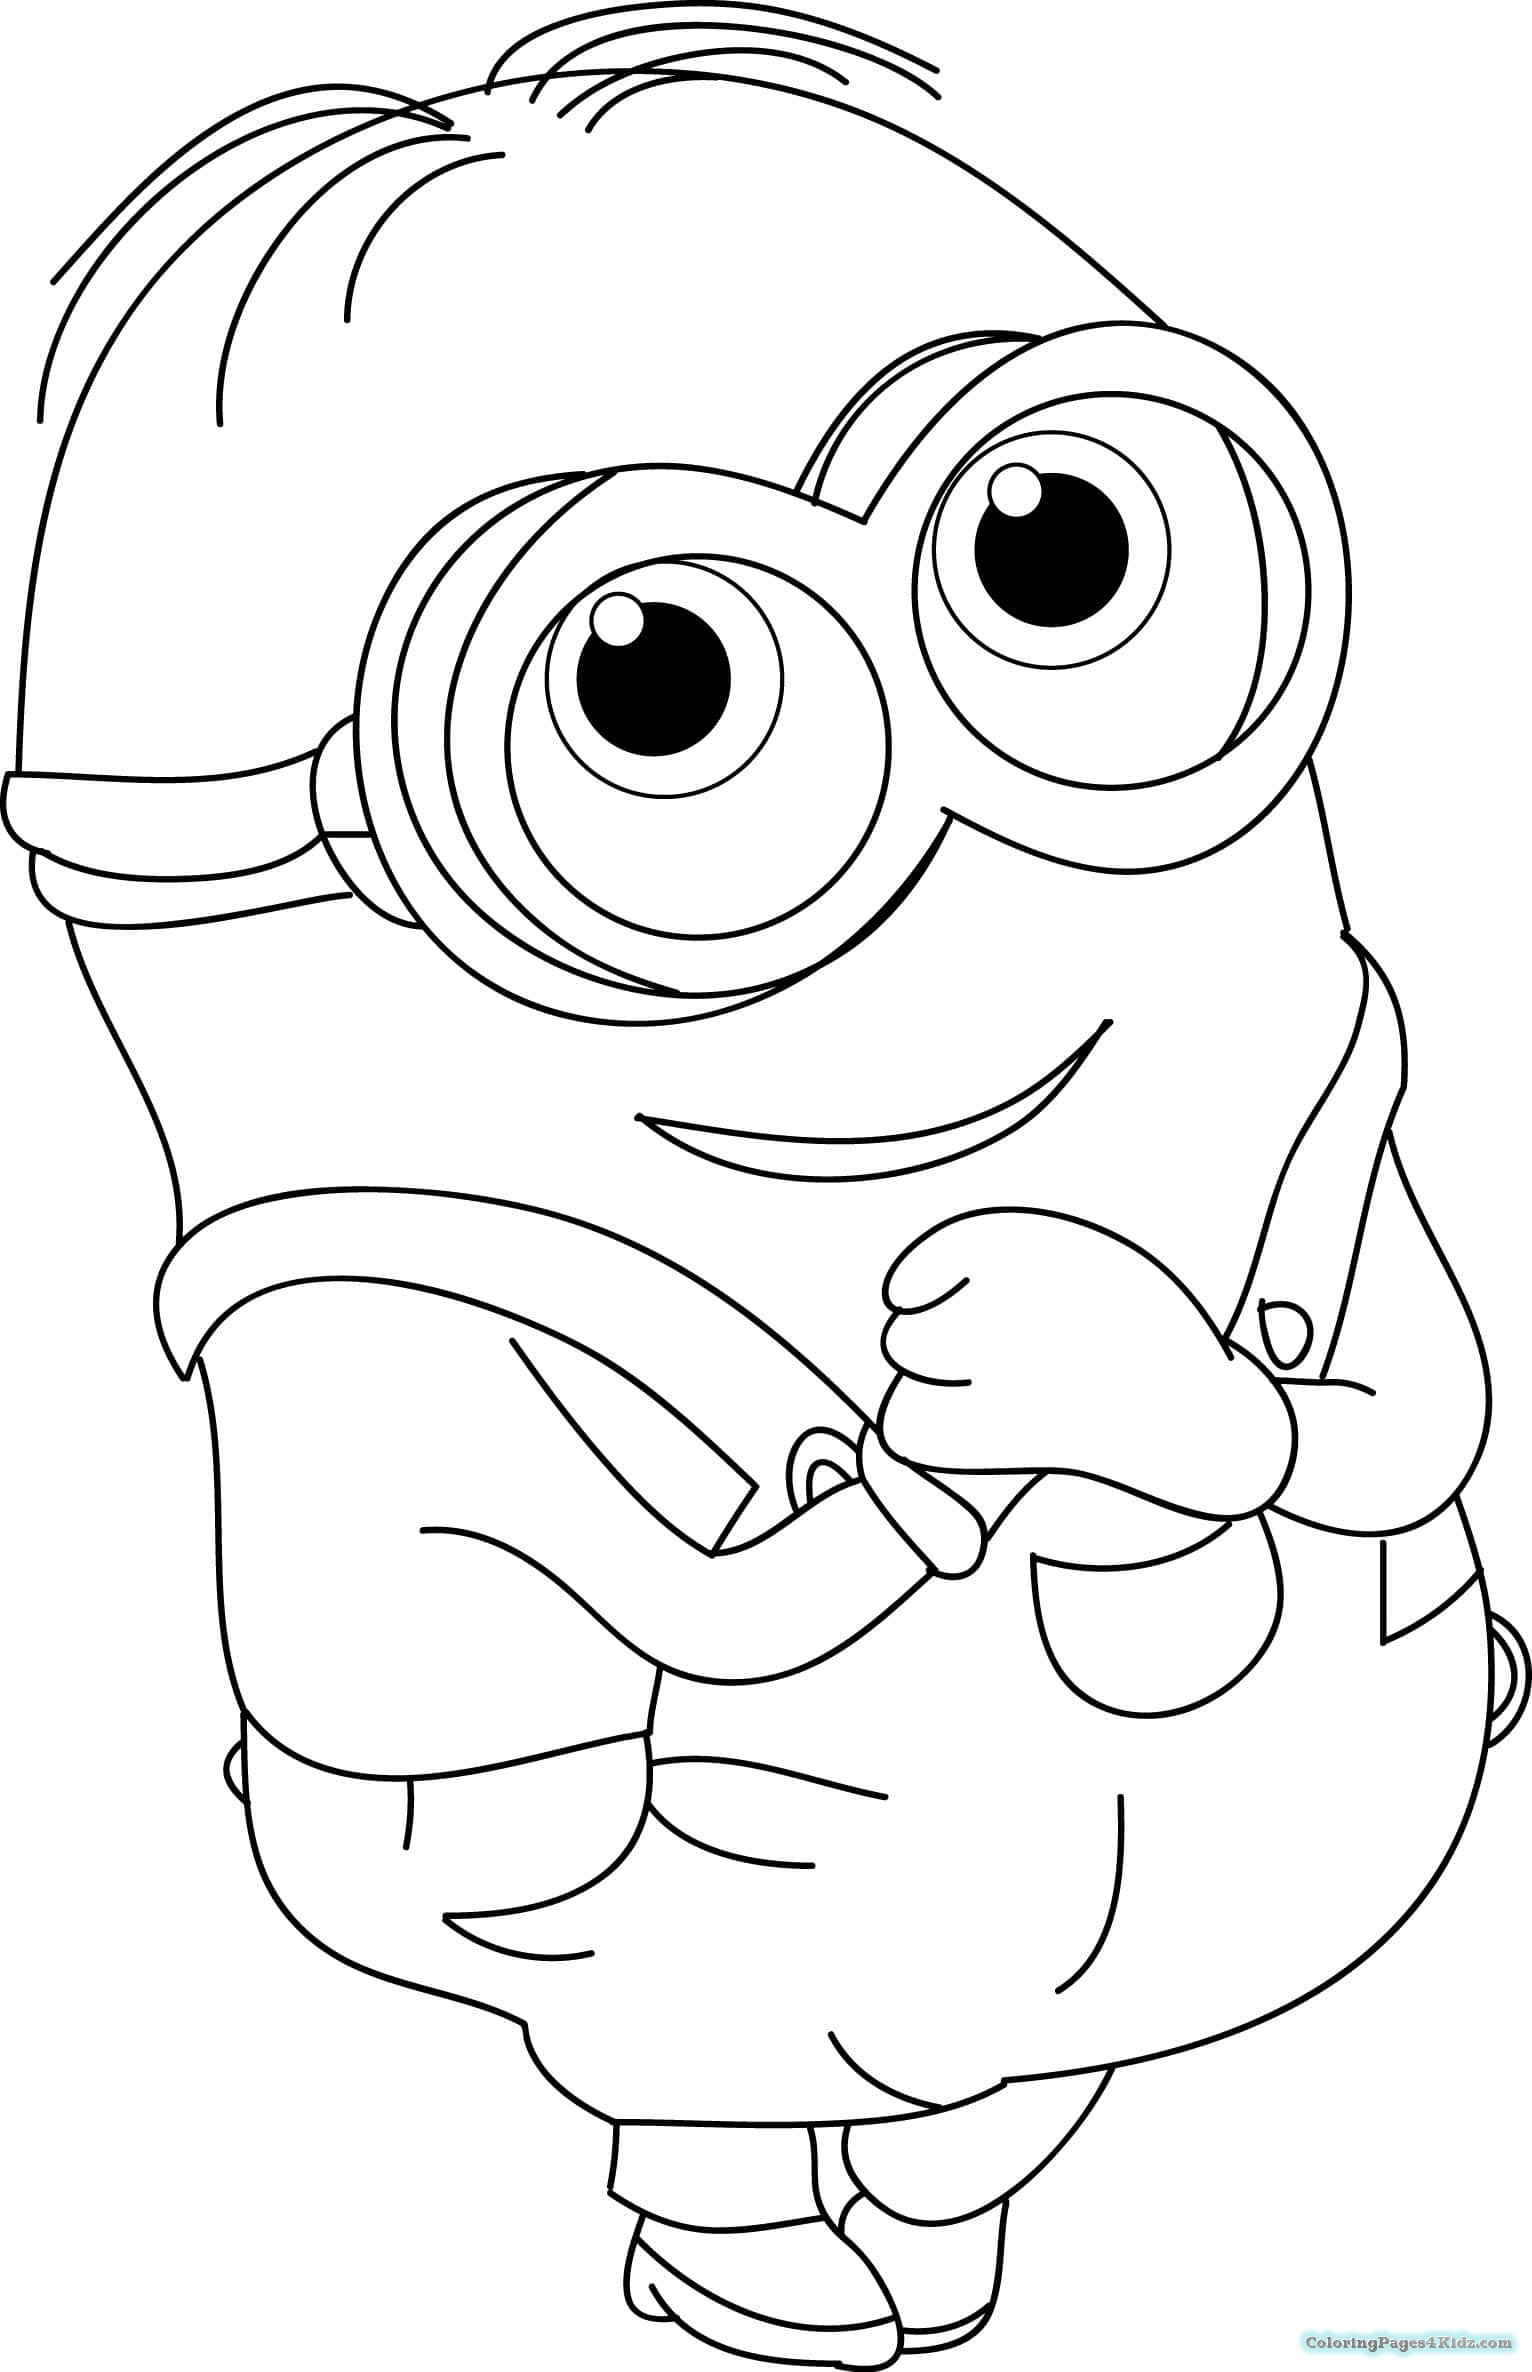 minion kevin coloring pages minion kevin playing golf coloring page free printable pages coloring minion kevin